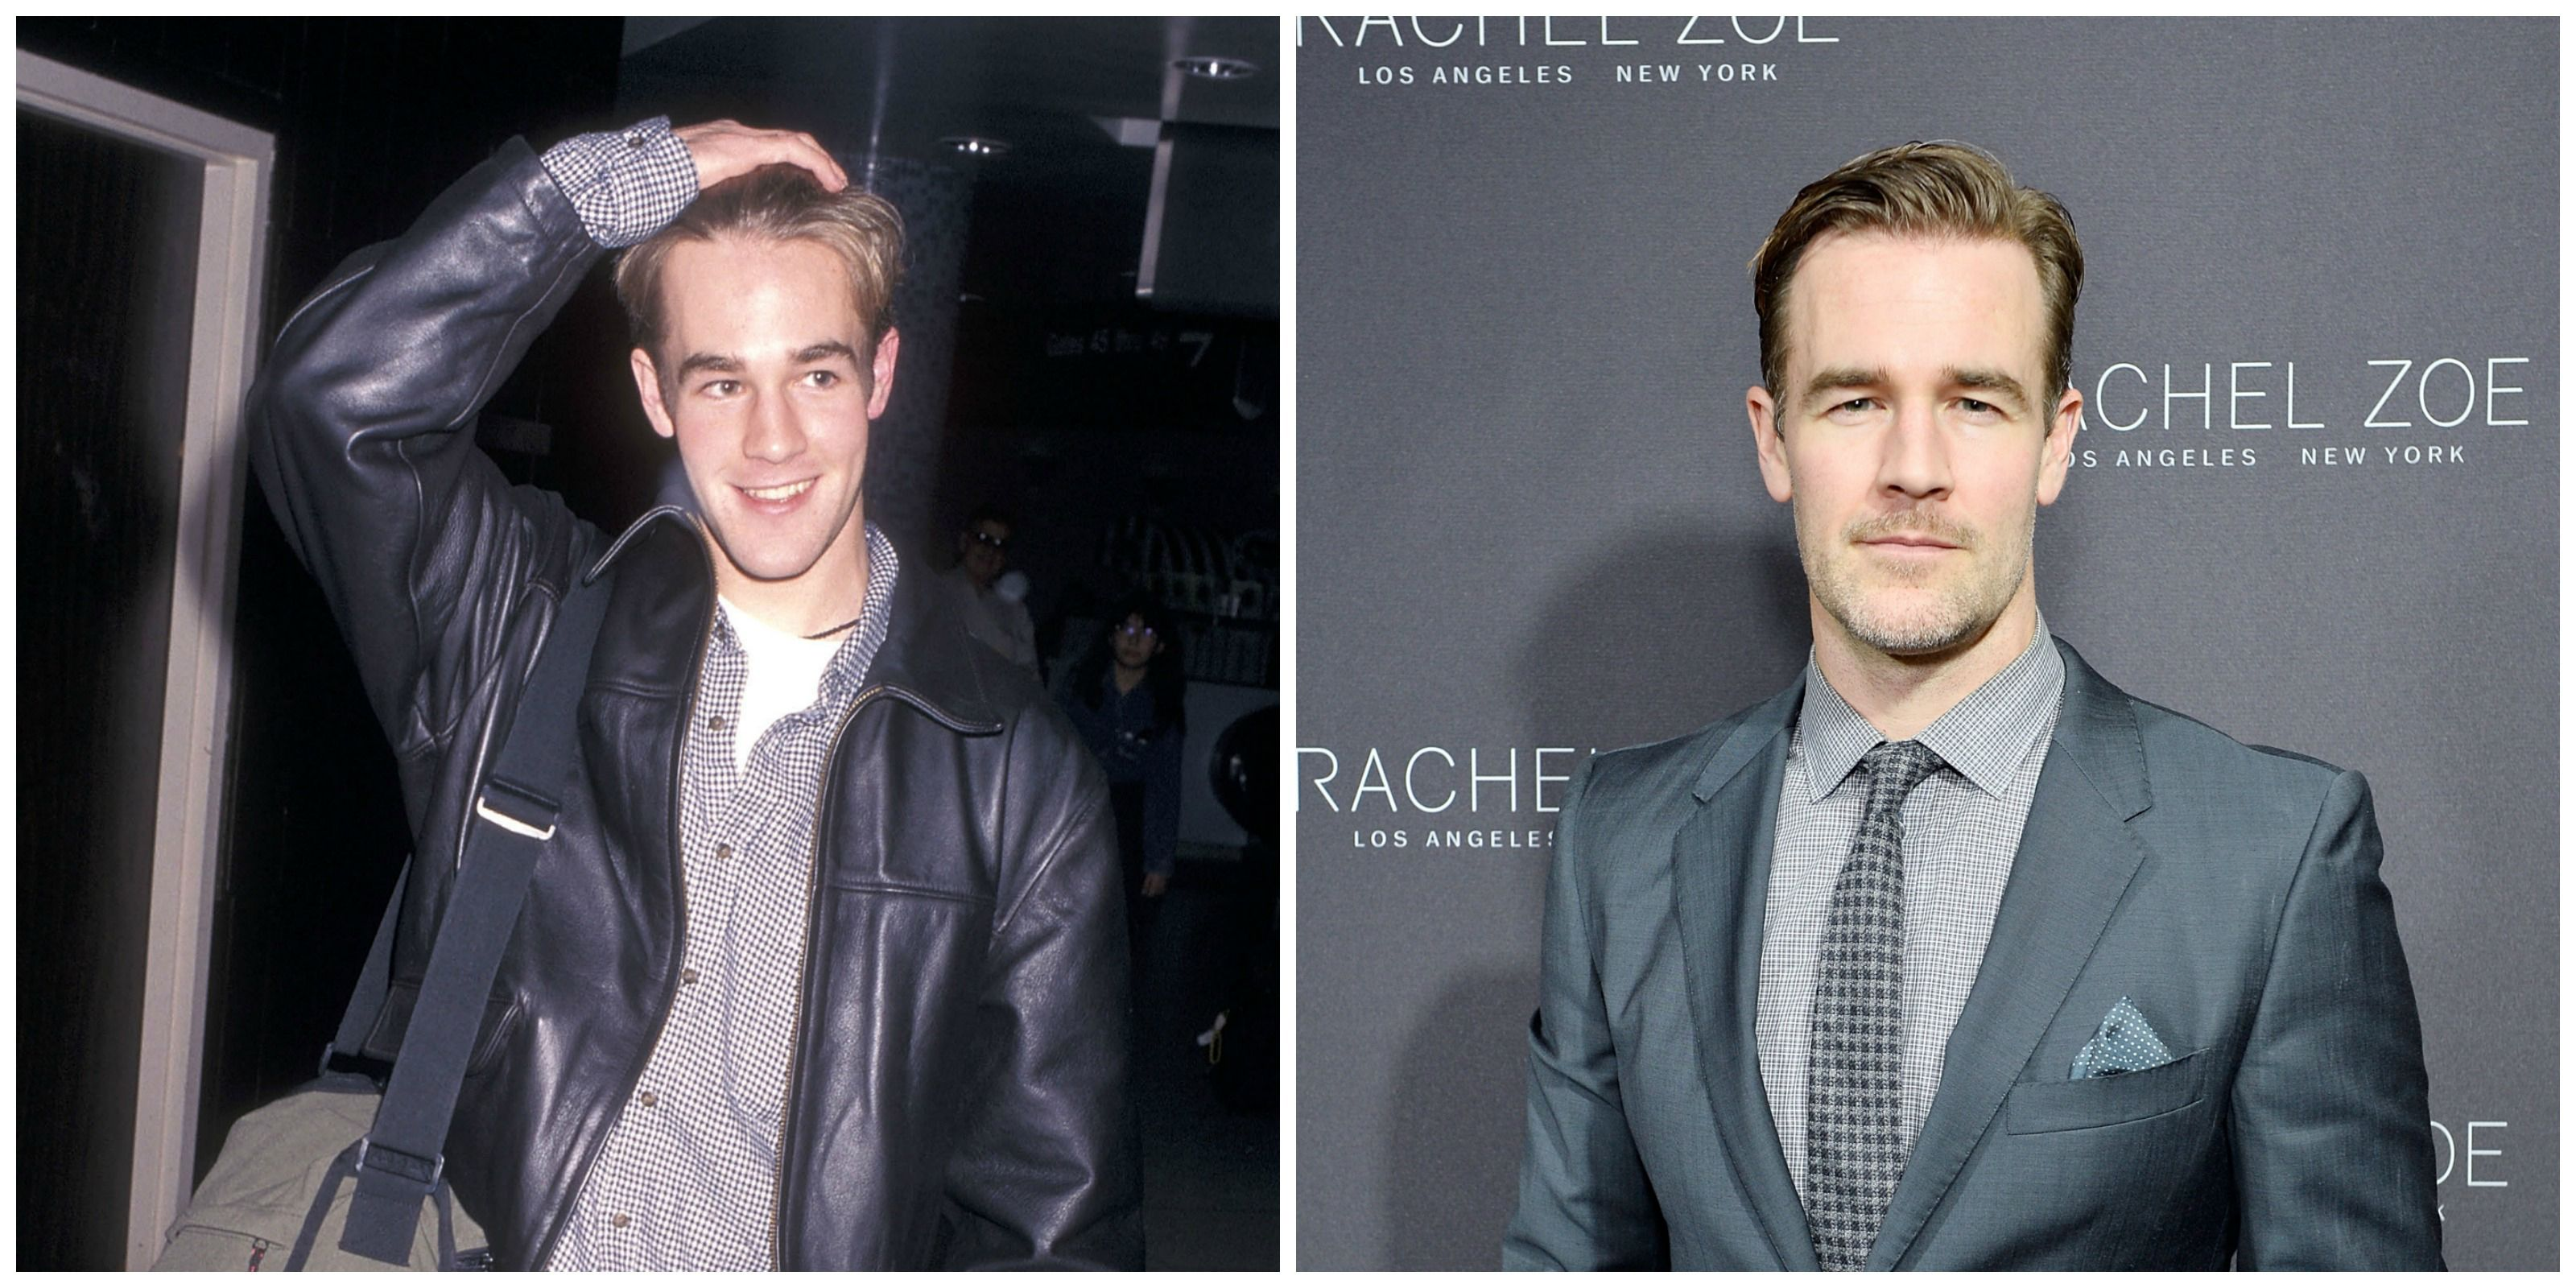 "<p>Van Der Beek was one of the defining hot TV guys of the '90s thanks to&nbsp&#x3B;his titular role on&nbsp&#x3B;<em data-verified=""redactor"" data-redactor-tag=""em"">Dawson's Creek</em><span class=""redactor-invisible-space"" data-verified=""redactor"" data-redactor-tag=""span"" data-redactor-class=""redactor-invisible-space"">. Since then, <a href=""http://www.redbookmag.com/life/a43300/james-van-der-beek-fourth-child/"" target=""_blank"" data-tracking-id=""recirc-text-link"">he's had four children</a> with wife&nbsp&#x3B;Kimberly Brook.</span></p>"